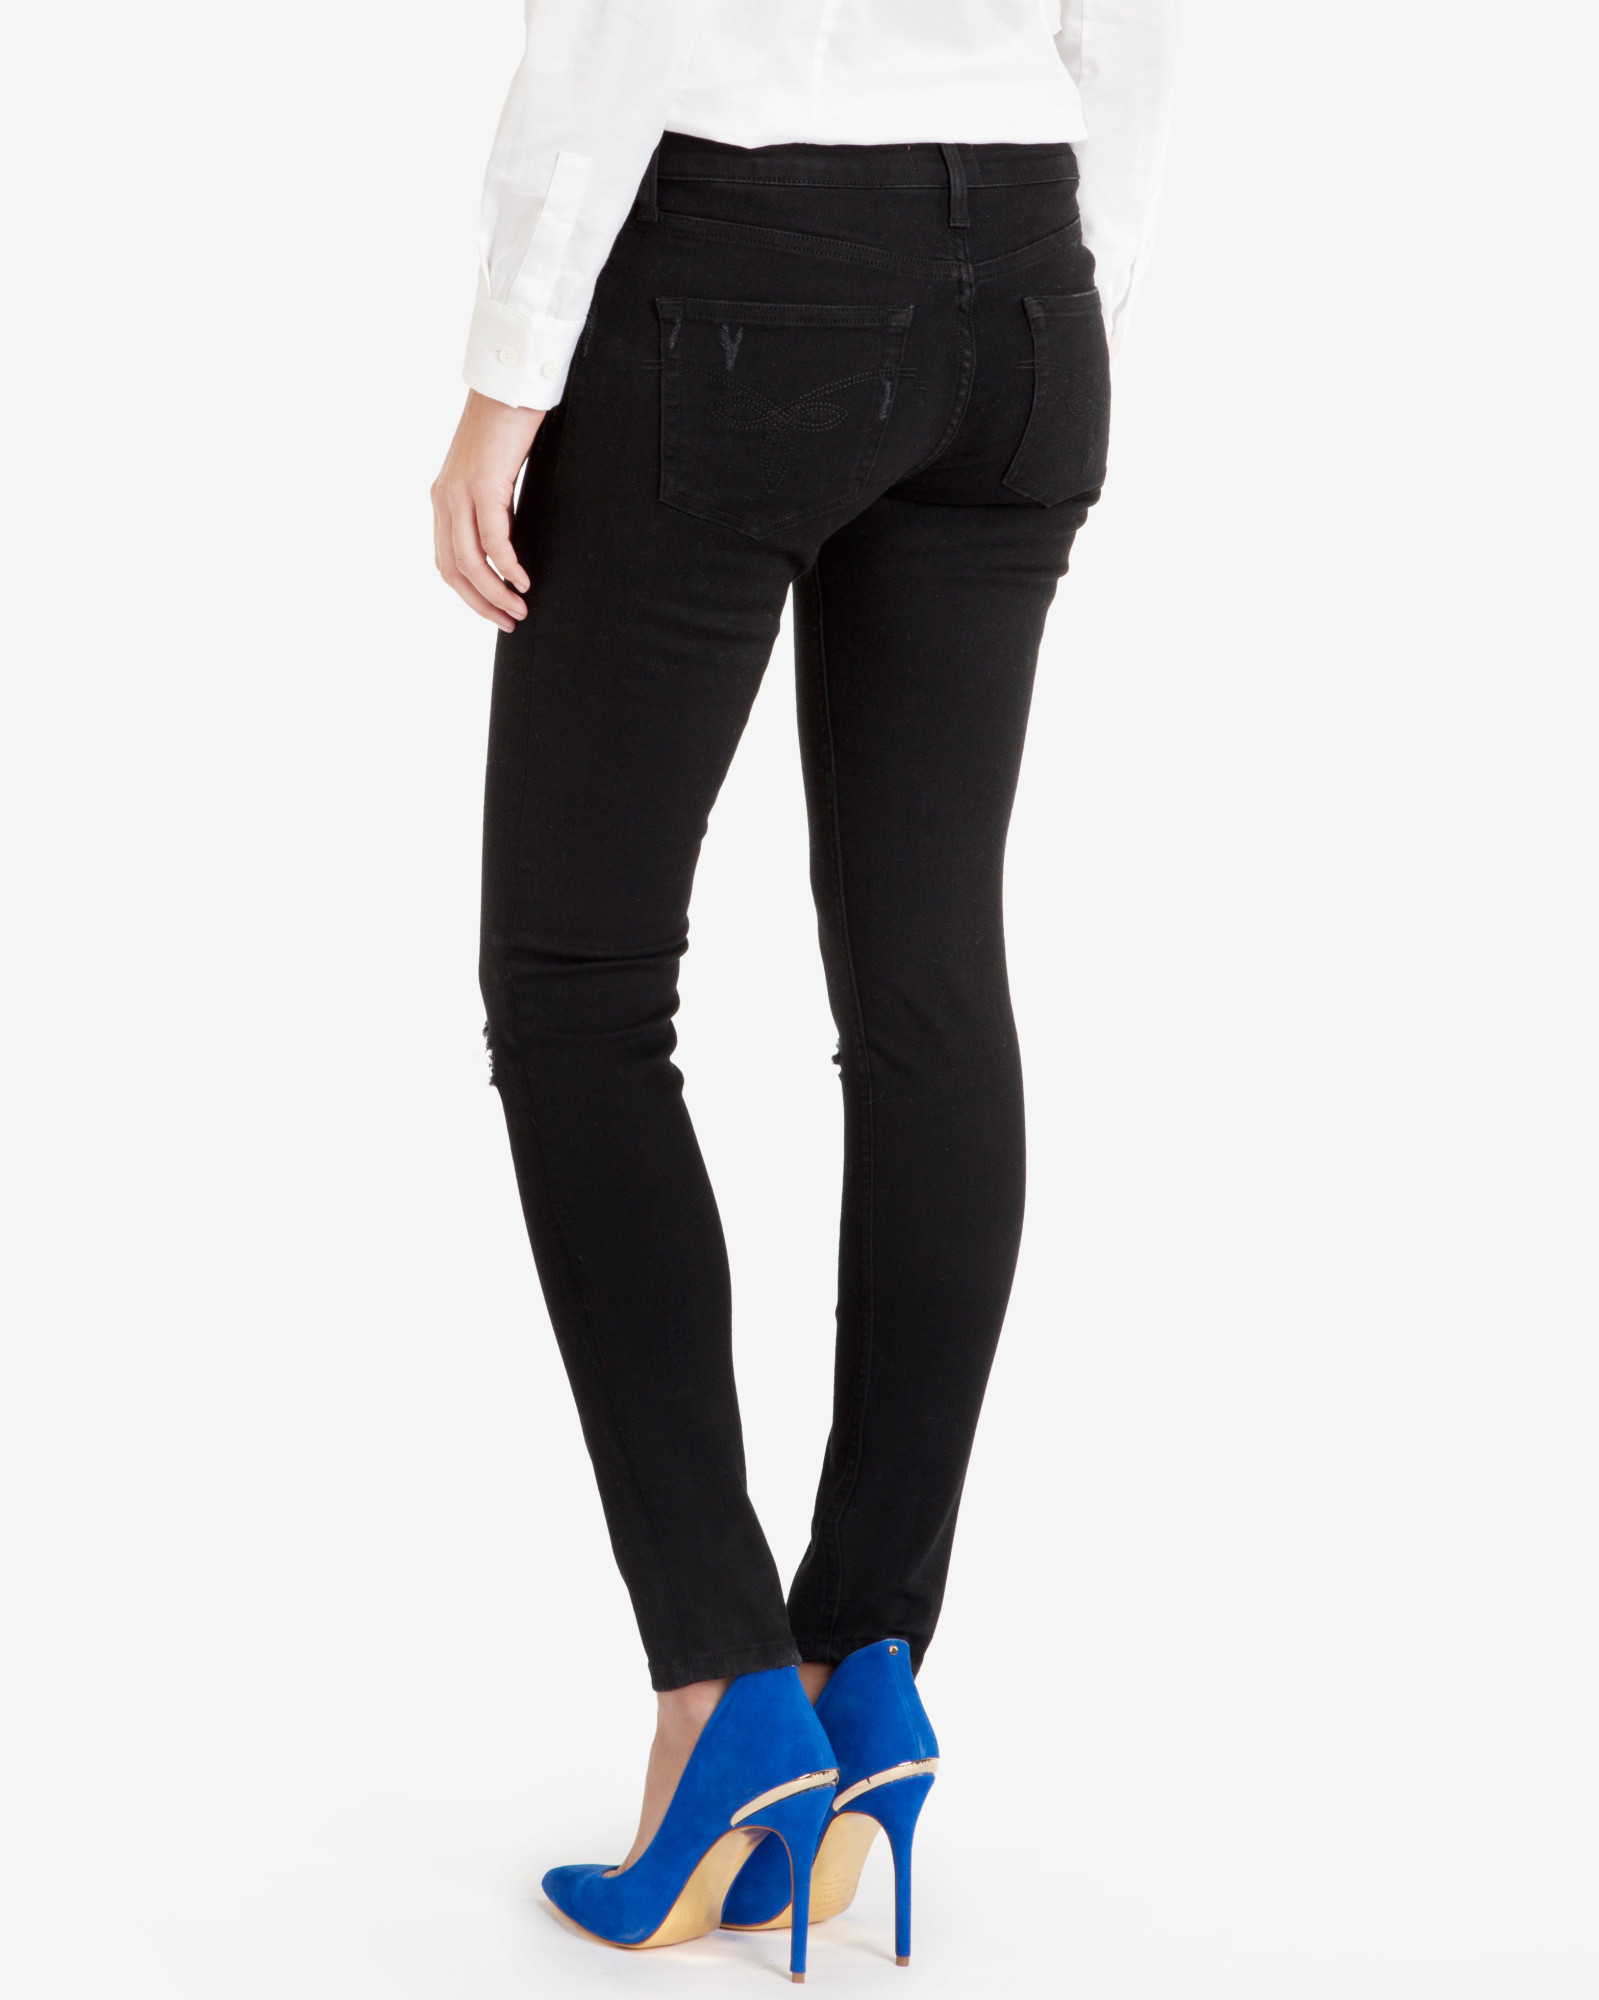 5271214b6c5d0 Lyst - Ted Baker Black Distressed Skinny Jeans in Black